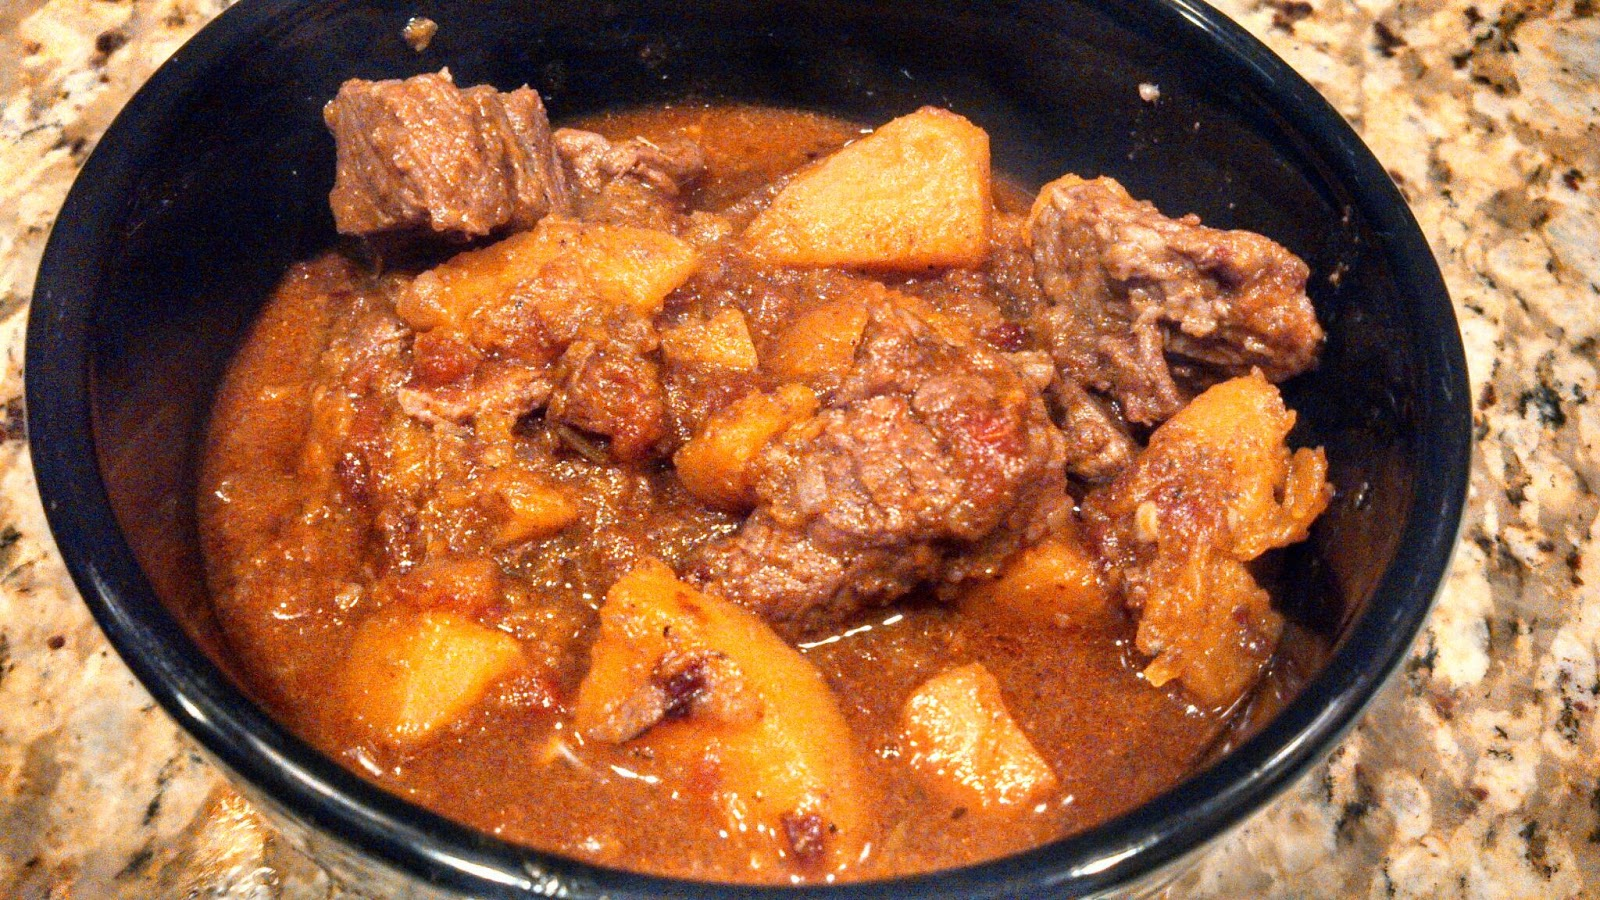 Hot Dog It's a Food Blog: Texas Beef Brisket Chili Take 2